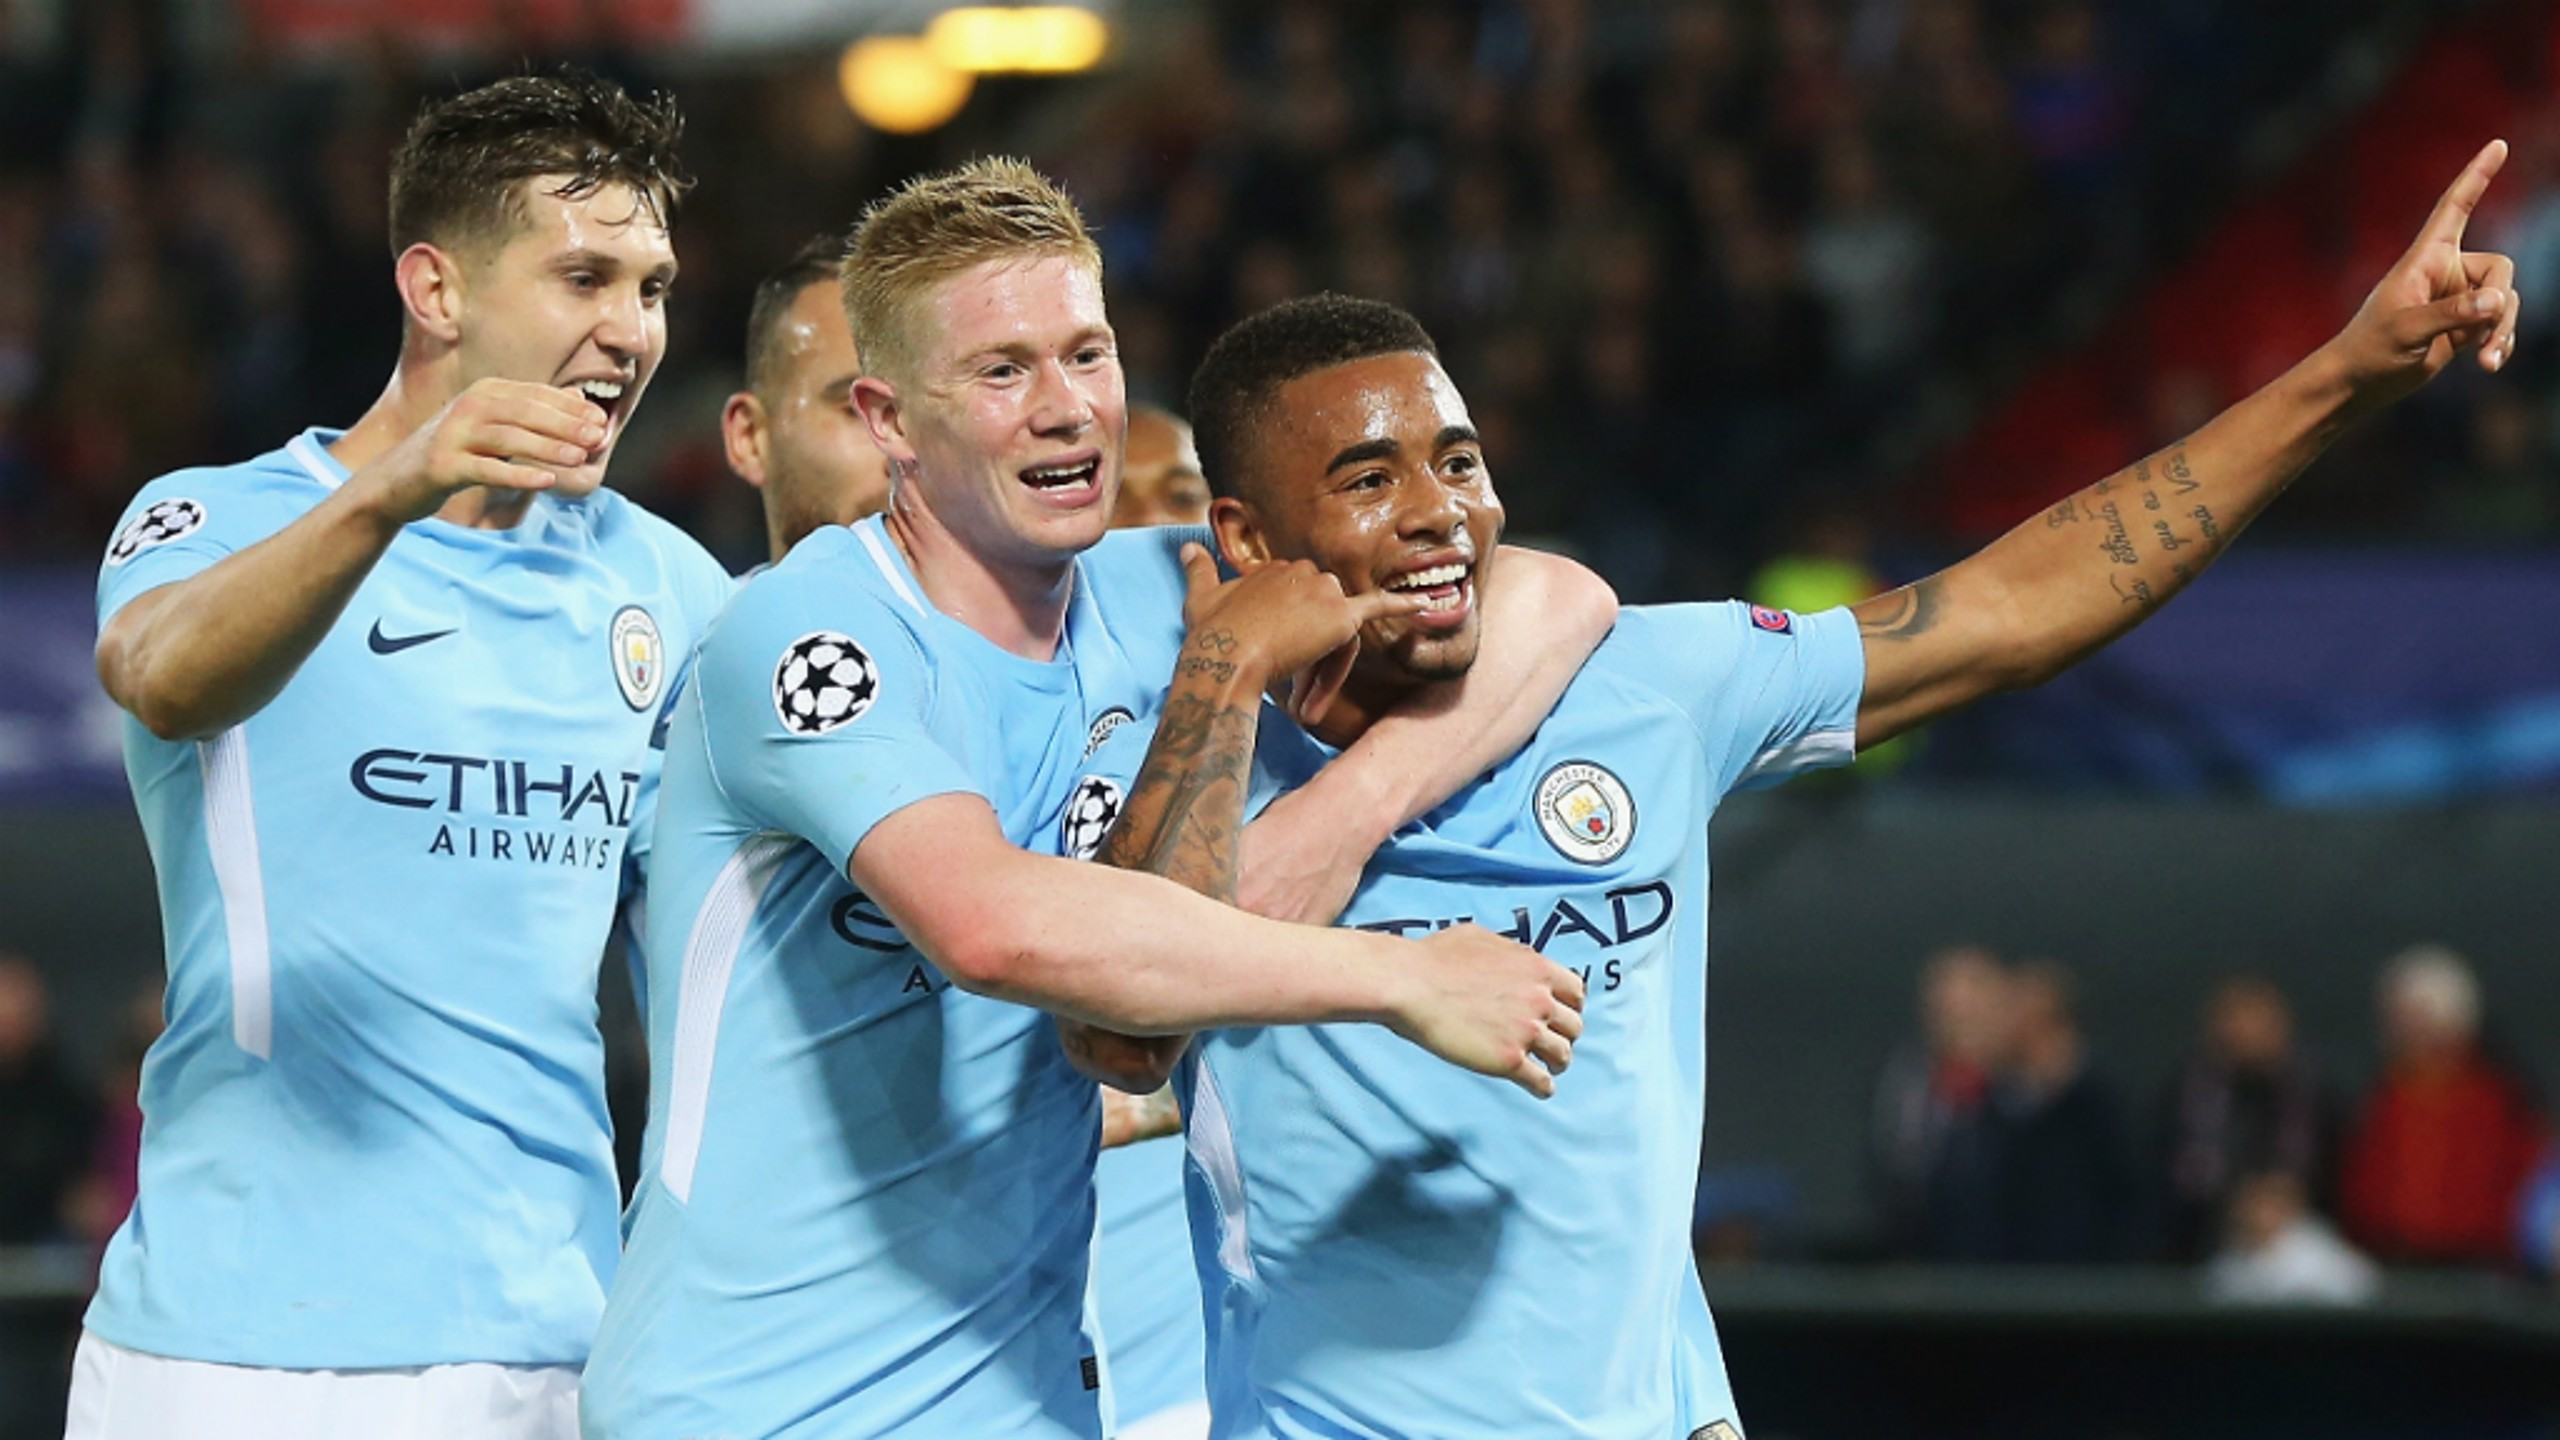 De Bruyne brilian, City pesta gol